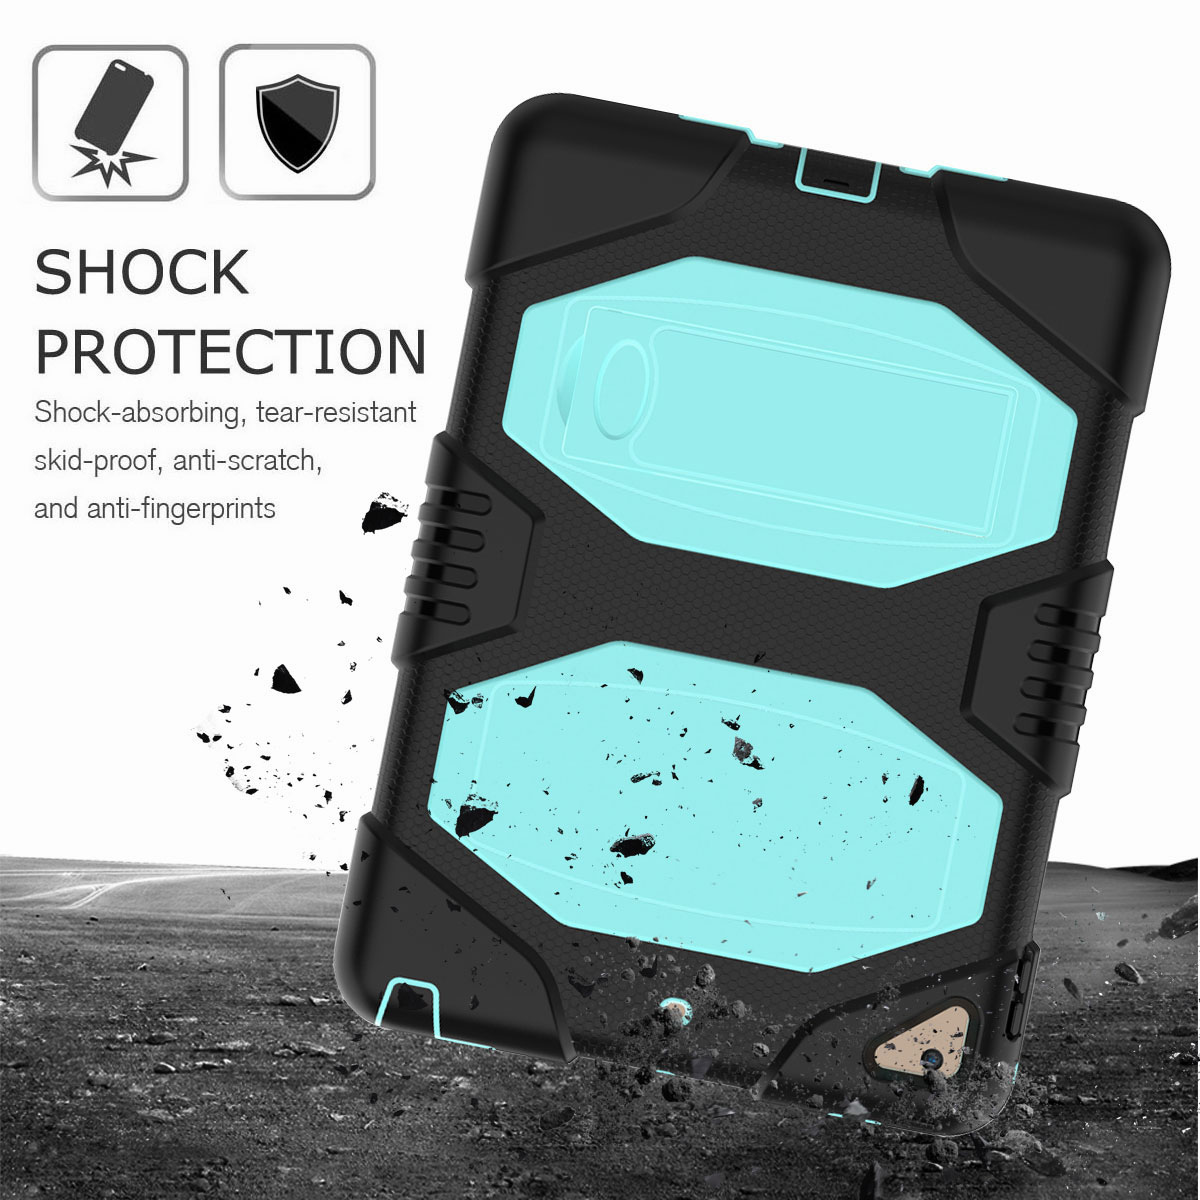 Hybrid-Rubber-Heavy-Duty-Shockproof-Case-Cover-For-iPad-9-7-6th-Generation-2018 thumbnail 42